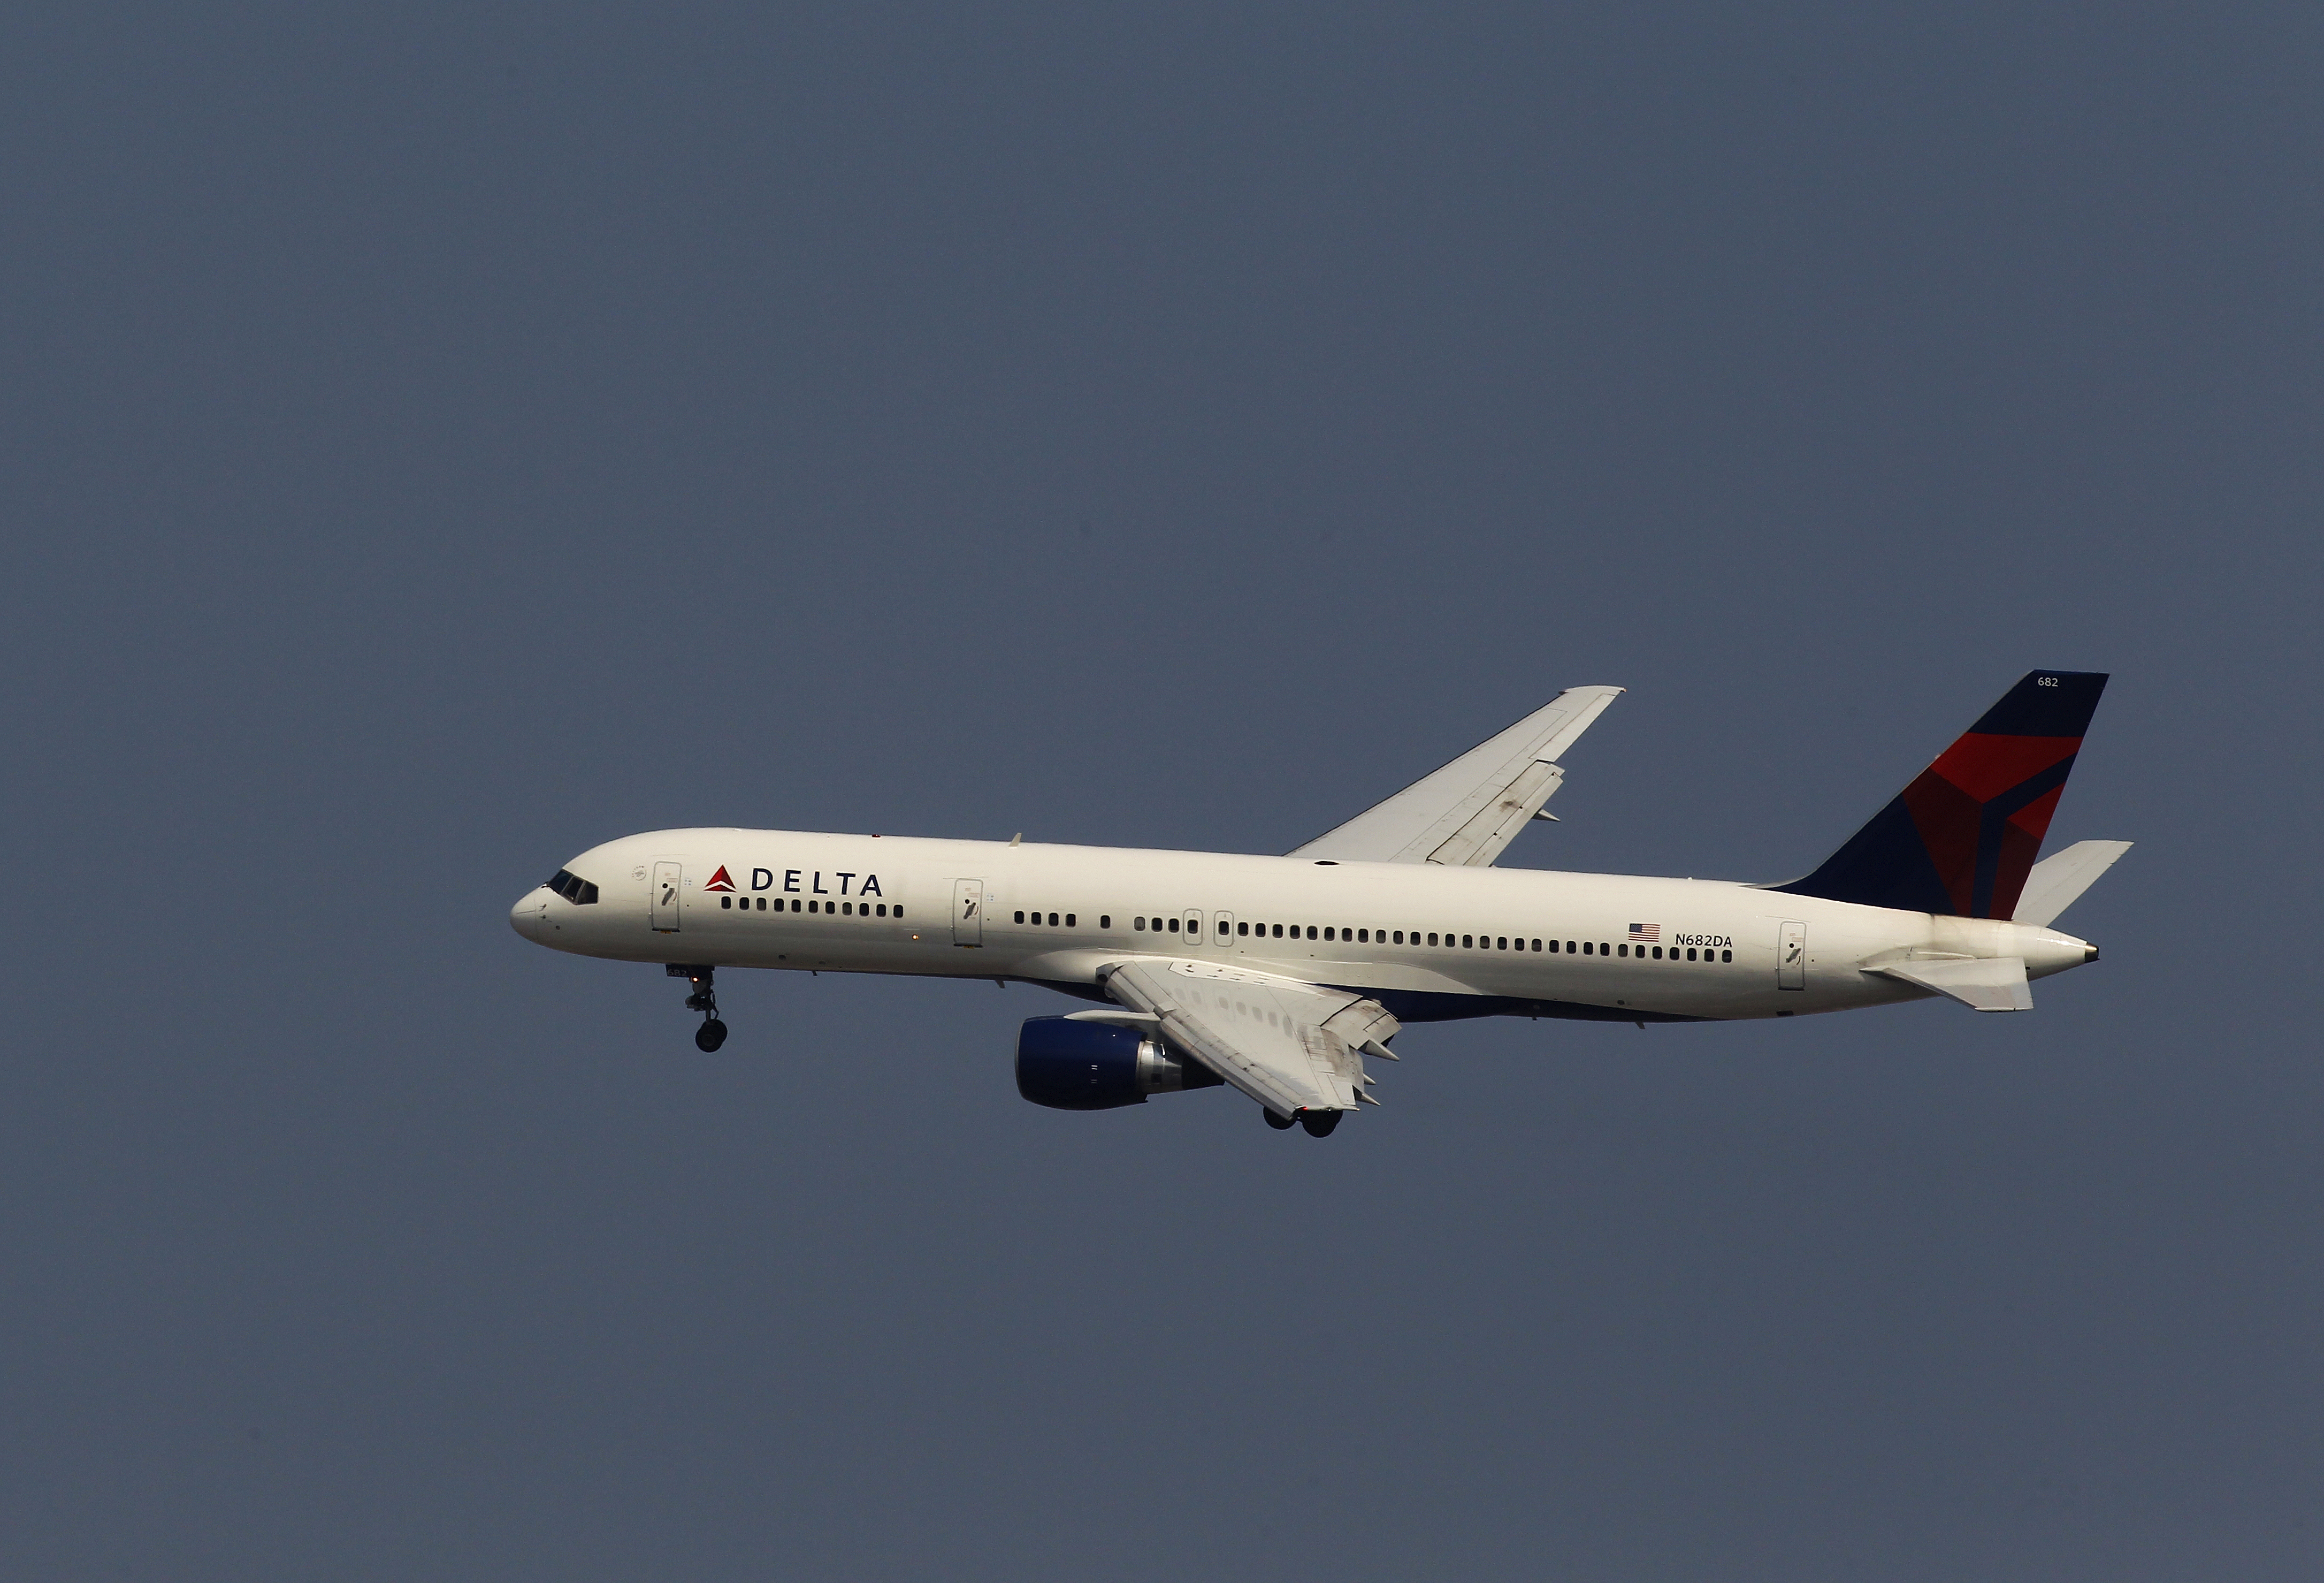 A Delta Air Lines airplane comes in for a landing at LaGuardia Airport in New York